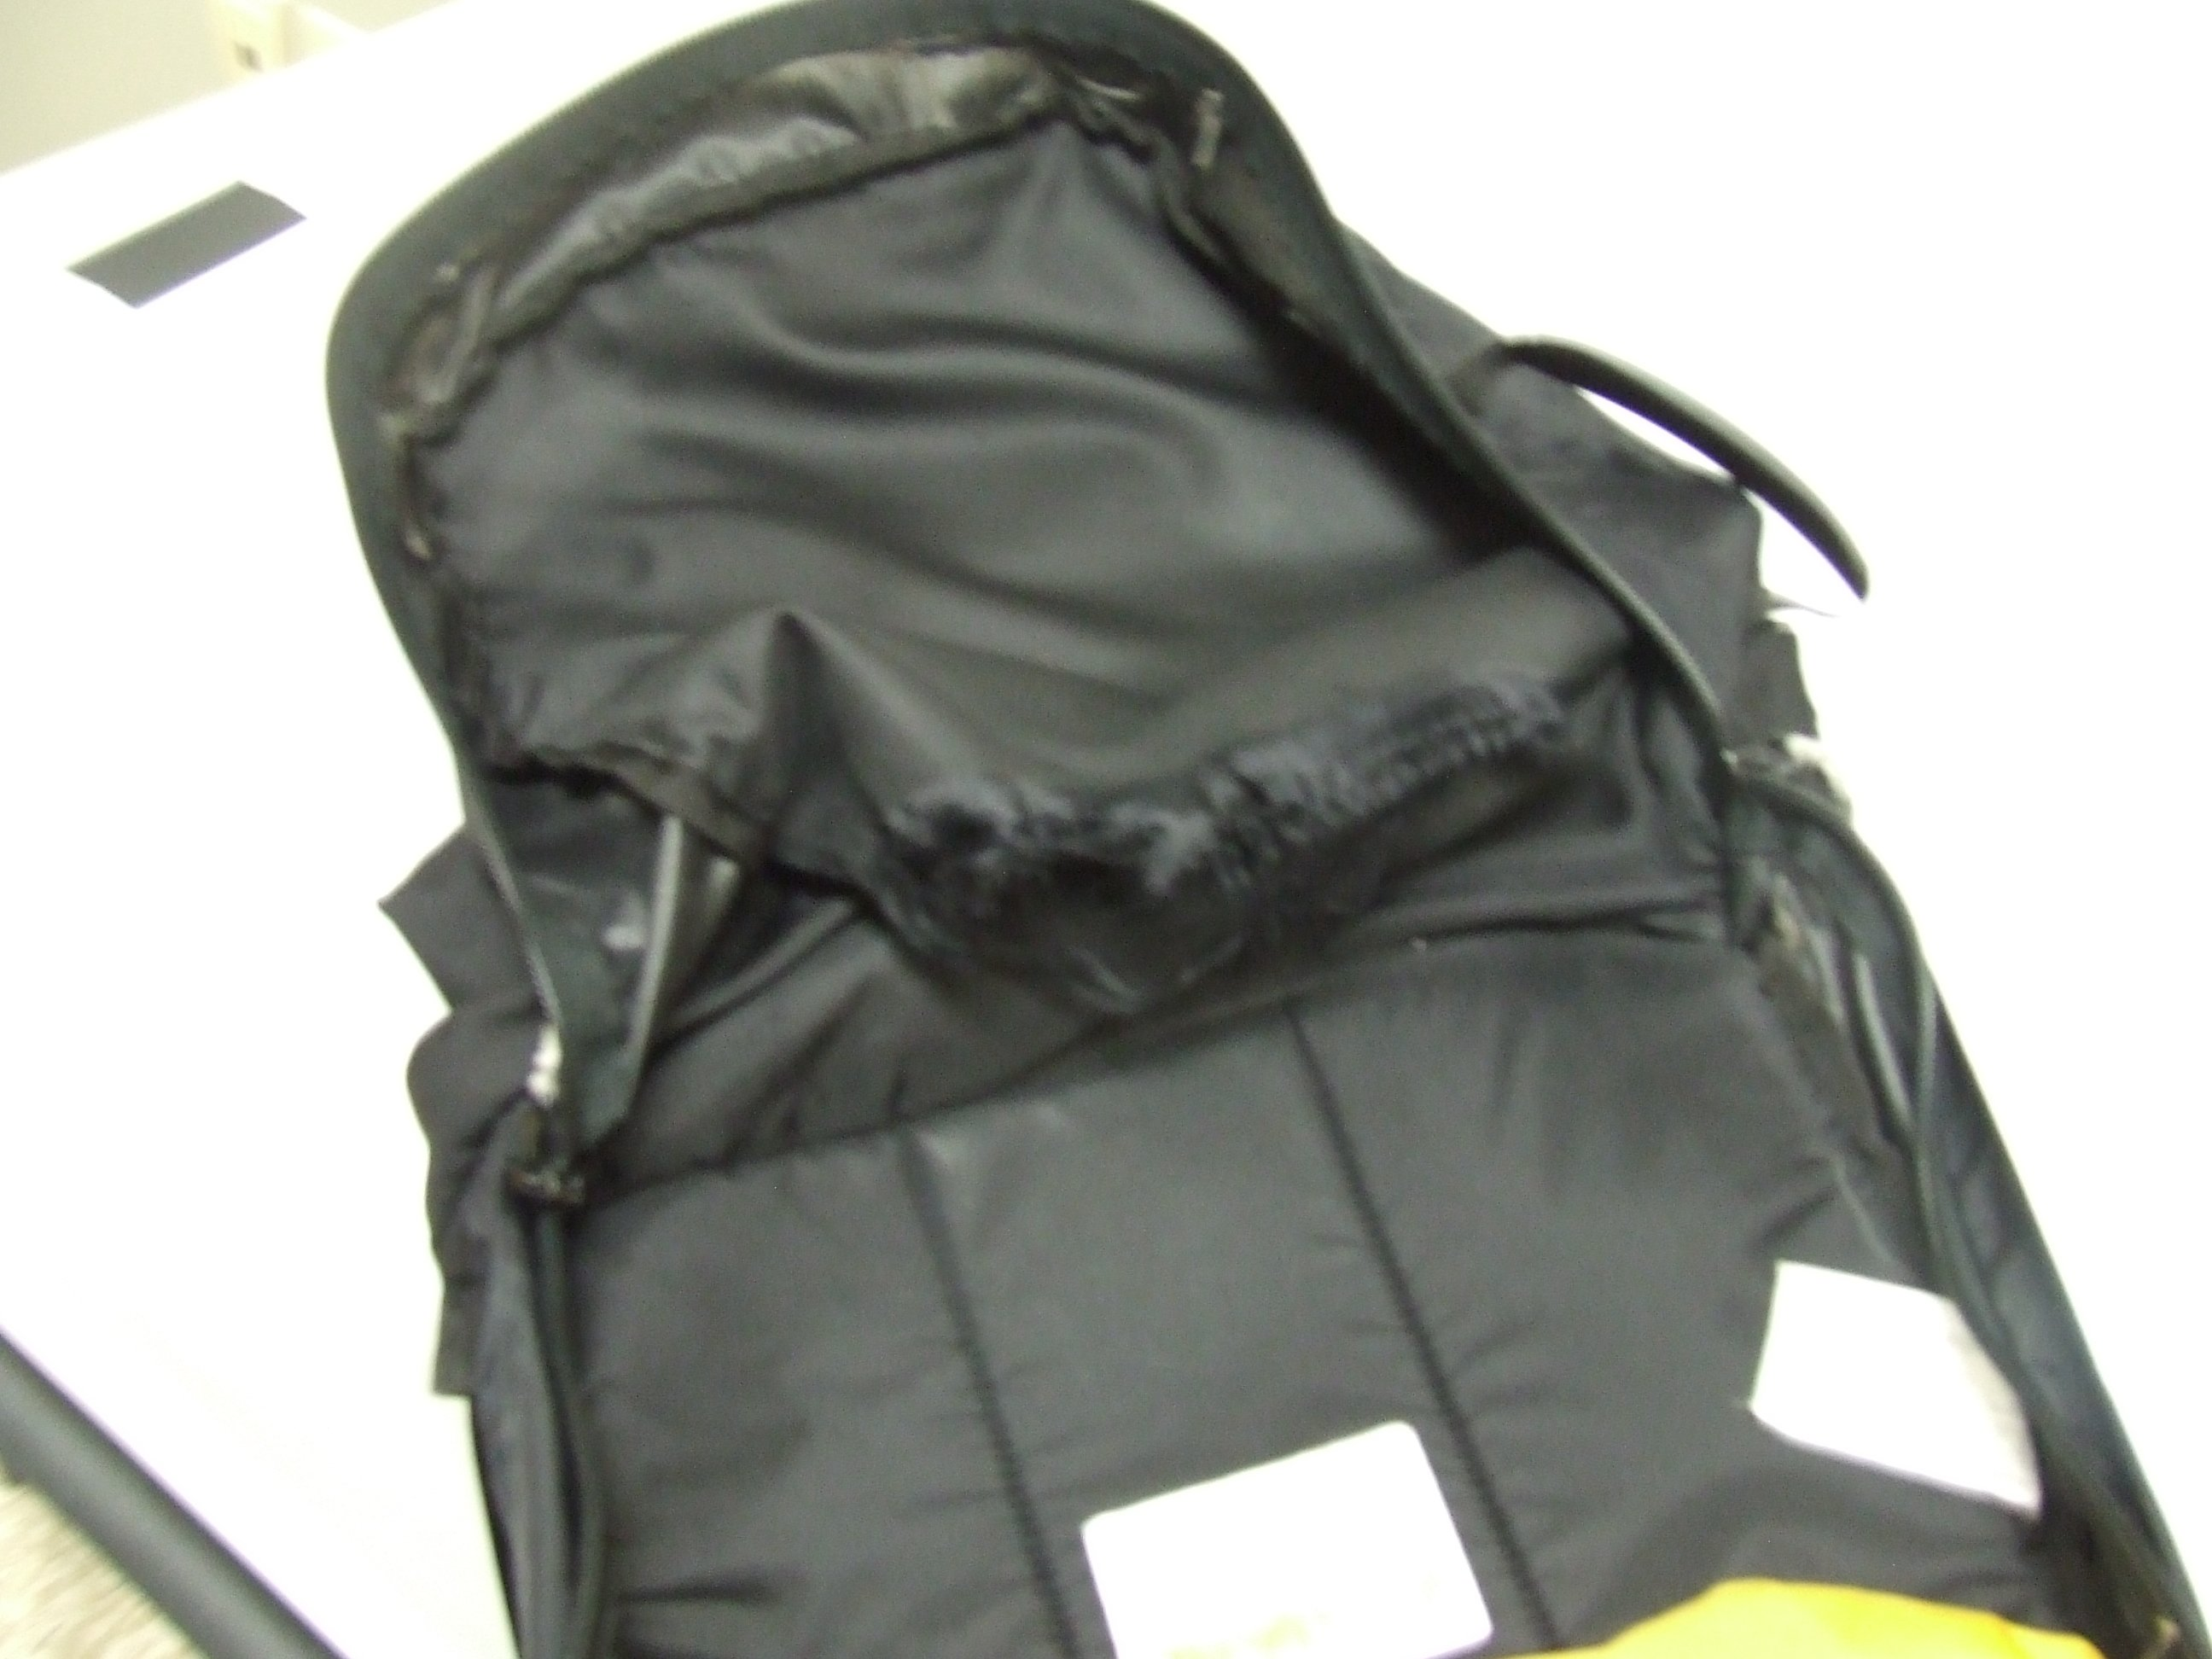 ed702e484cea How to Repair a Tear Inside a Backpack - iFixit Repair Guide